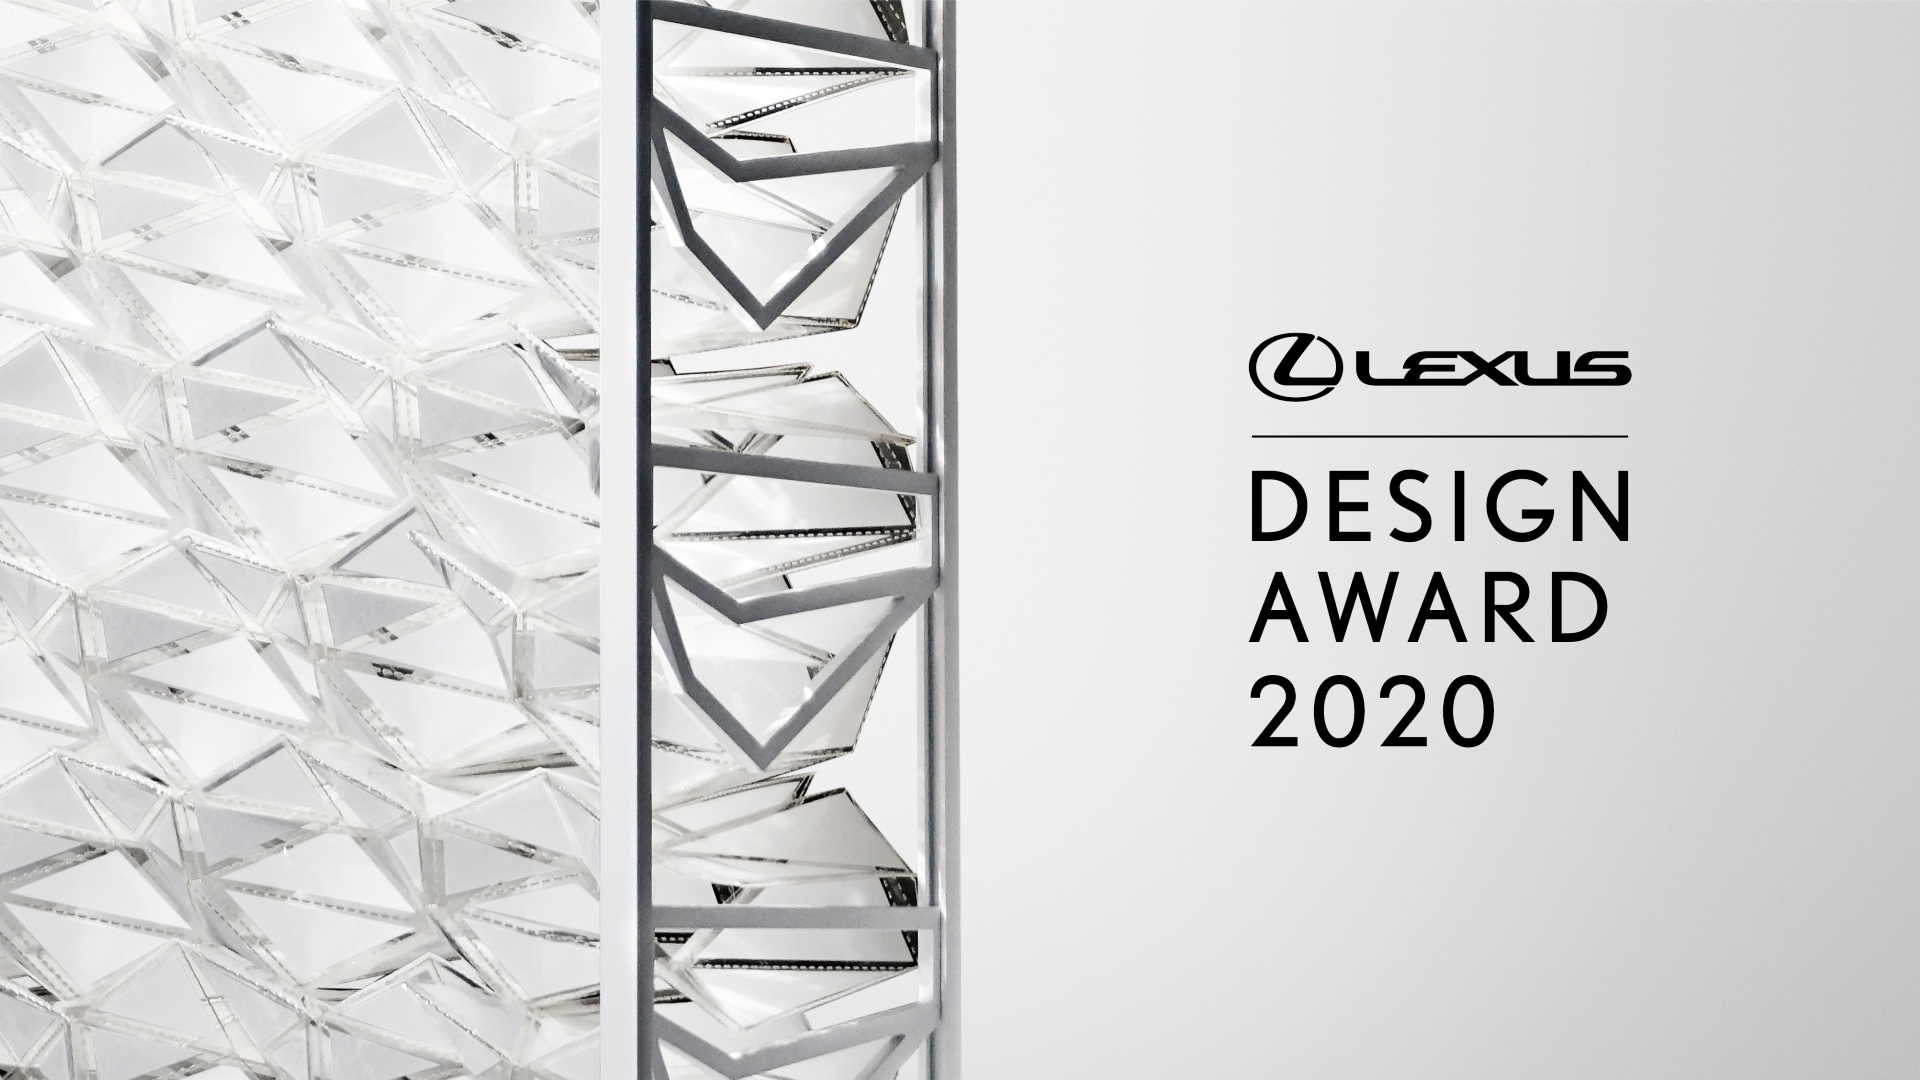 Lexus Design Awards 2020 Hero image